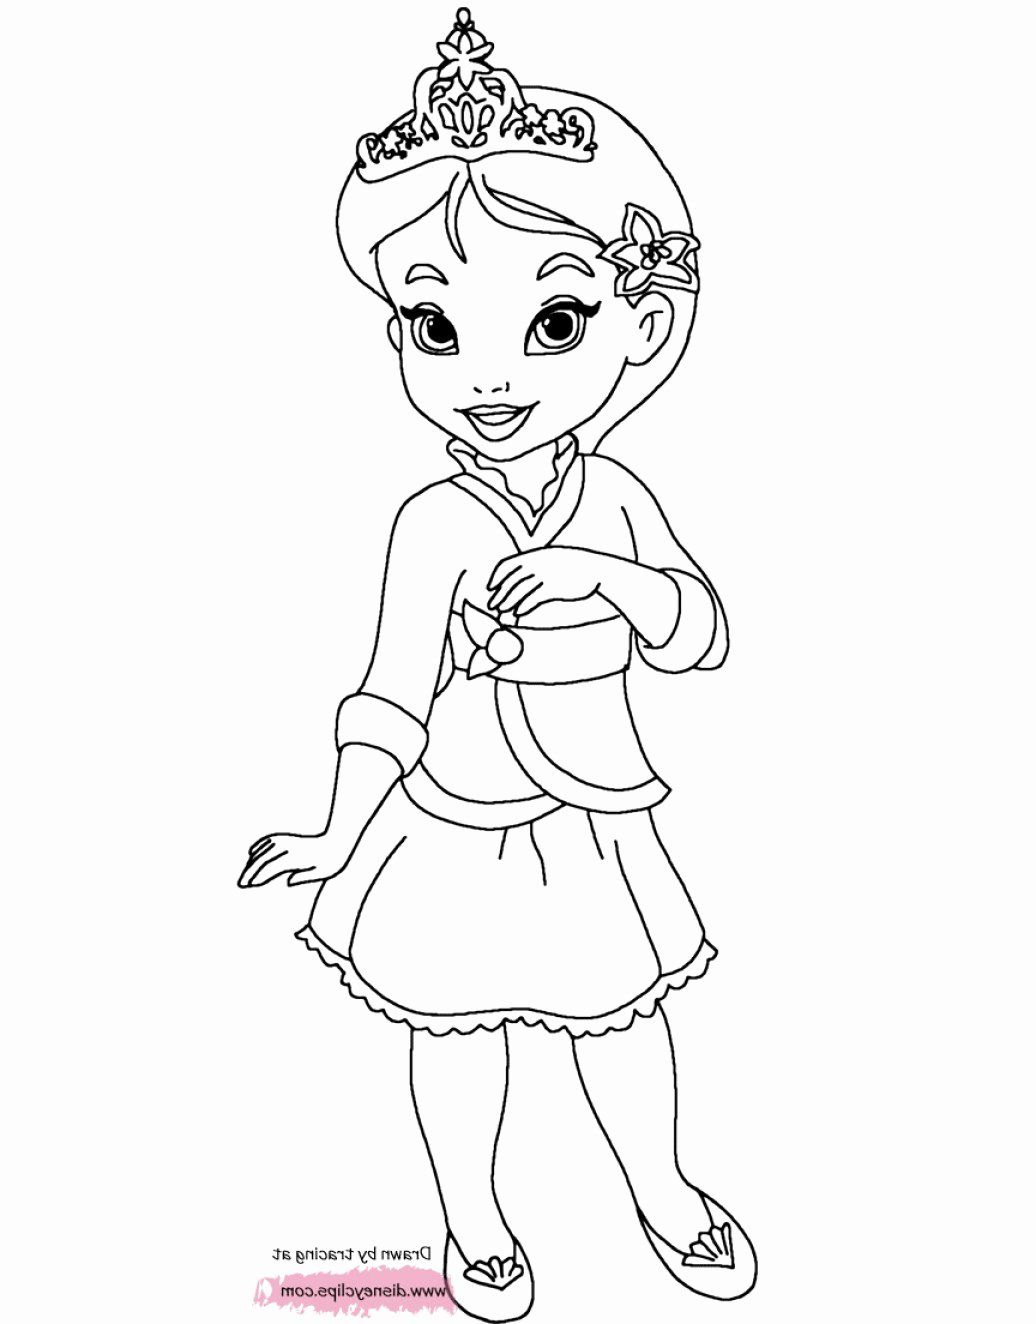 Cute Disney Princess Coloring Pages Unique Coloring Books Babyrincess Coloringages In 2020 Disney Princess Coloring Pages Disney Coloring Pages Disney Princess Colors